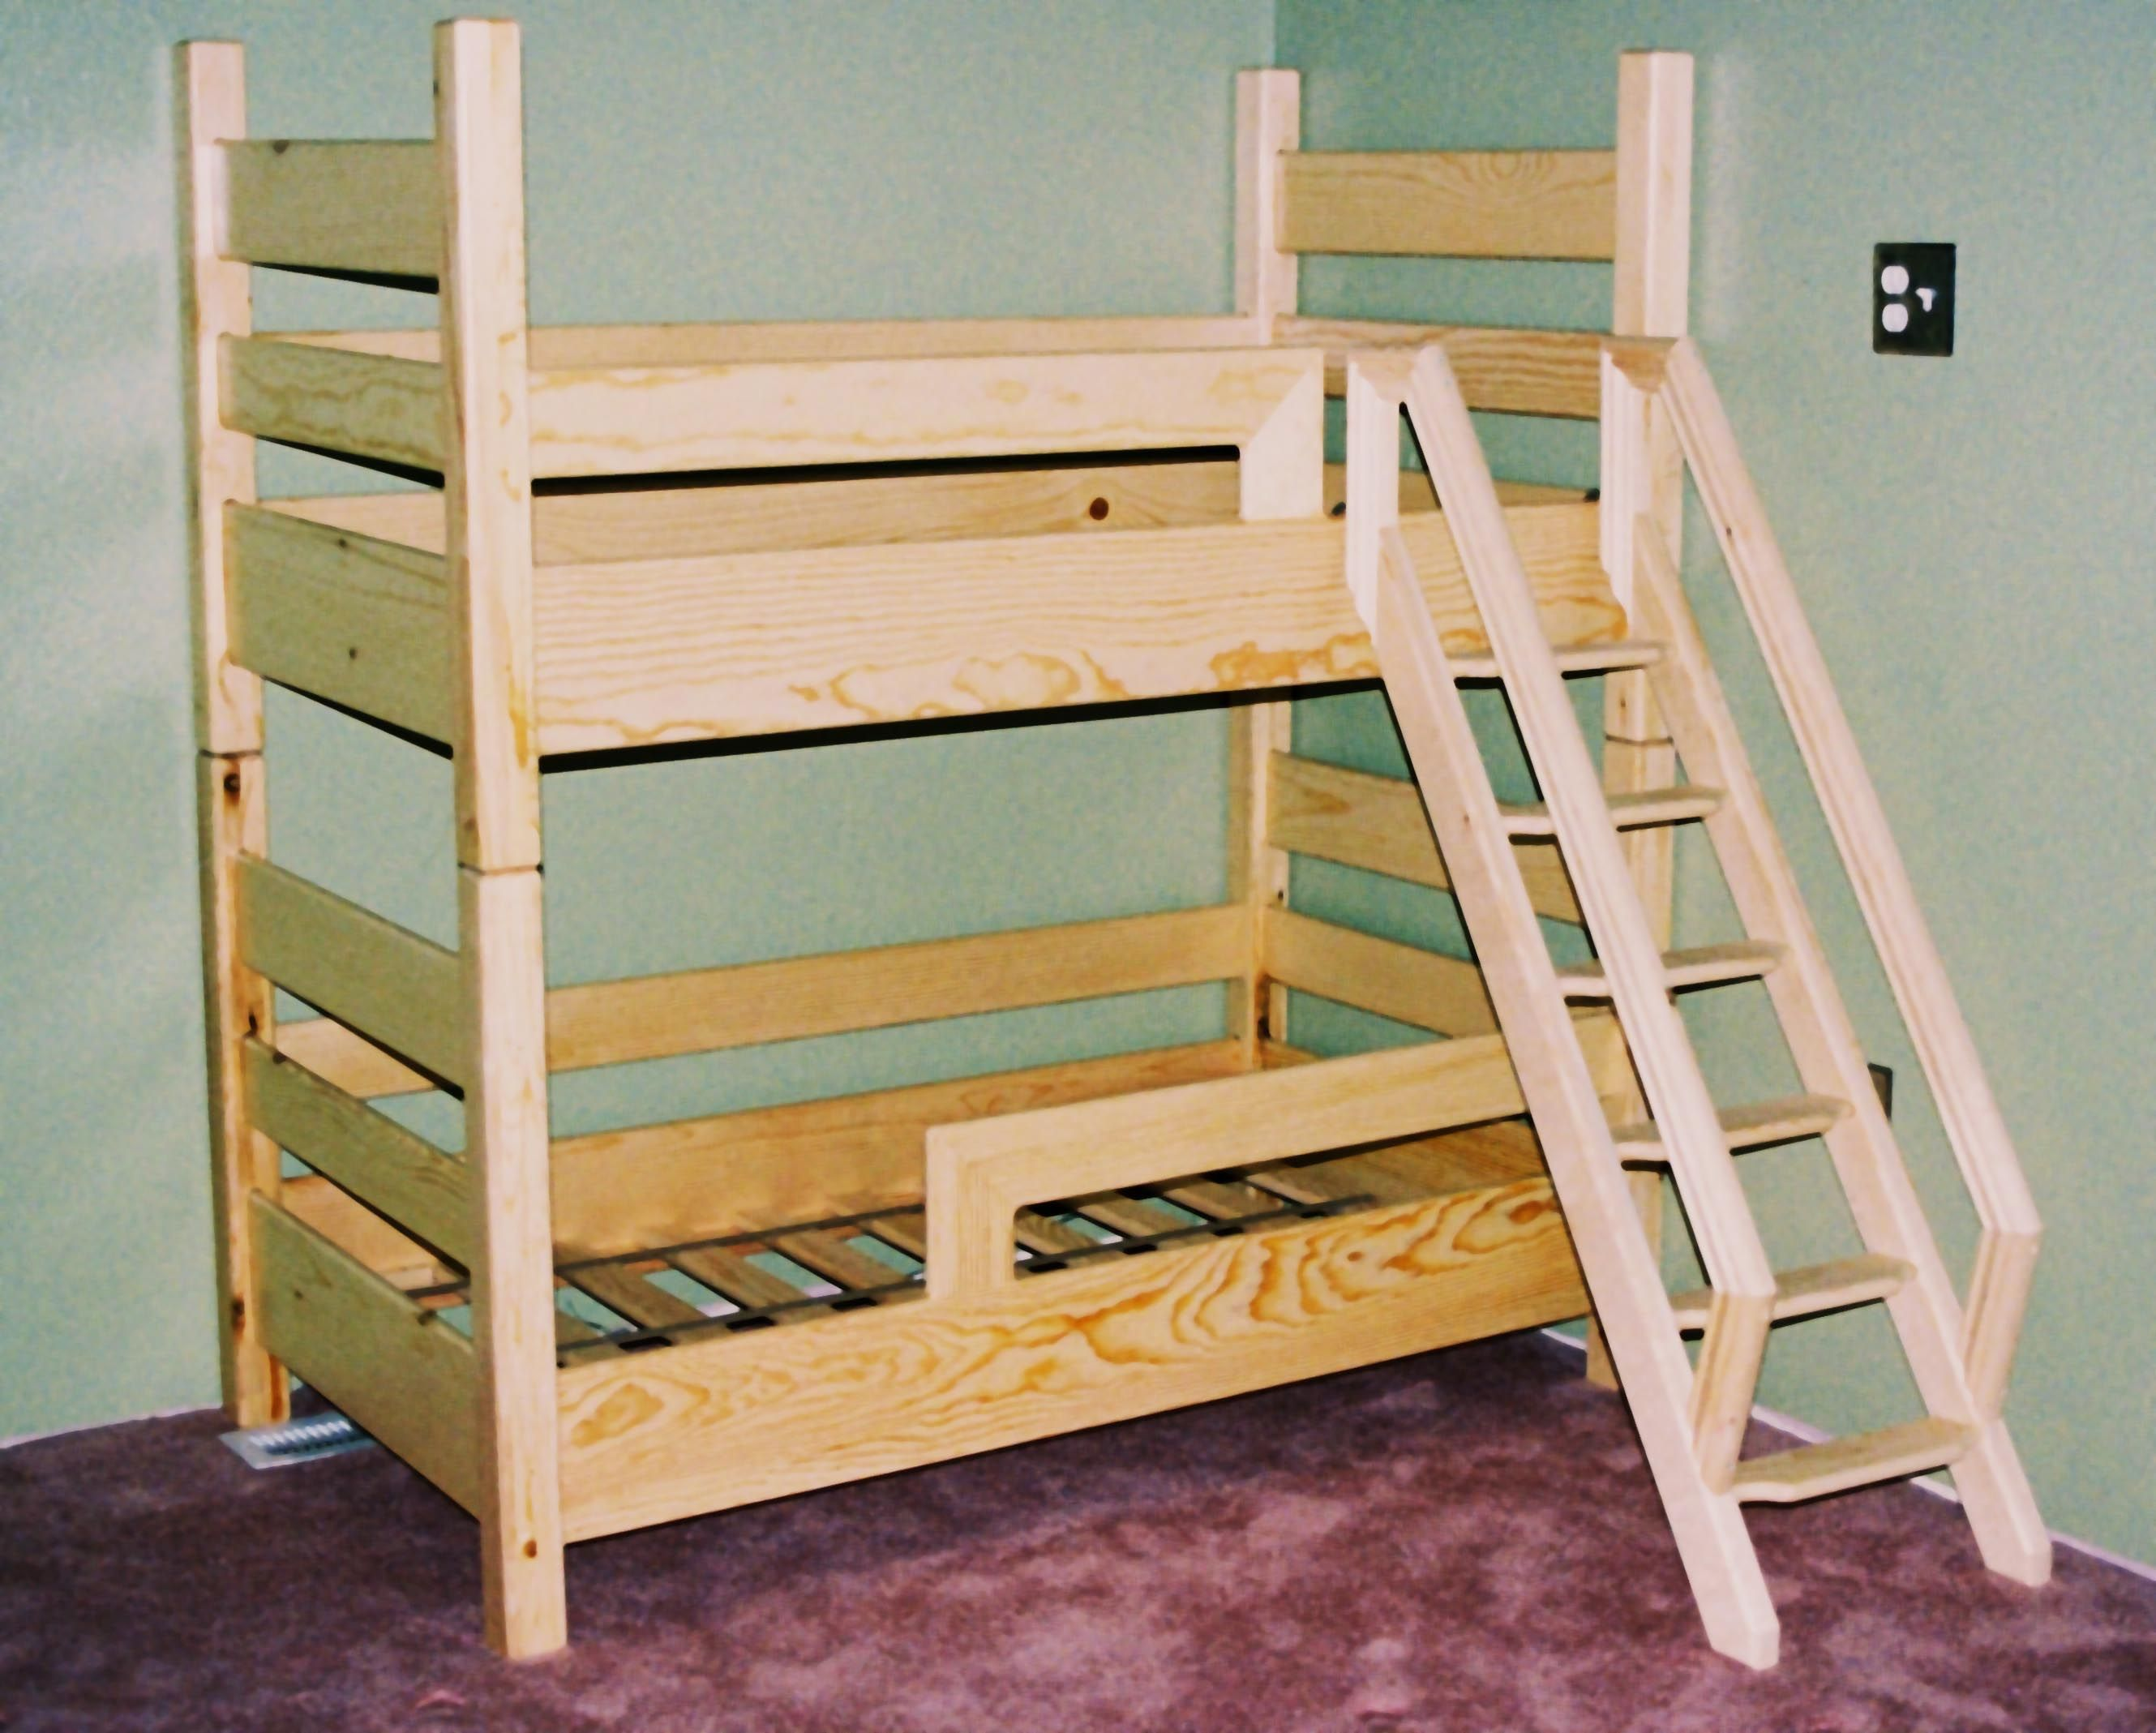 Toddler Bunks Possible Bunk Bed Ideas Toddler Bunk Beds For The